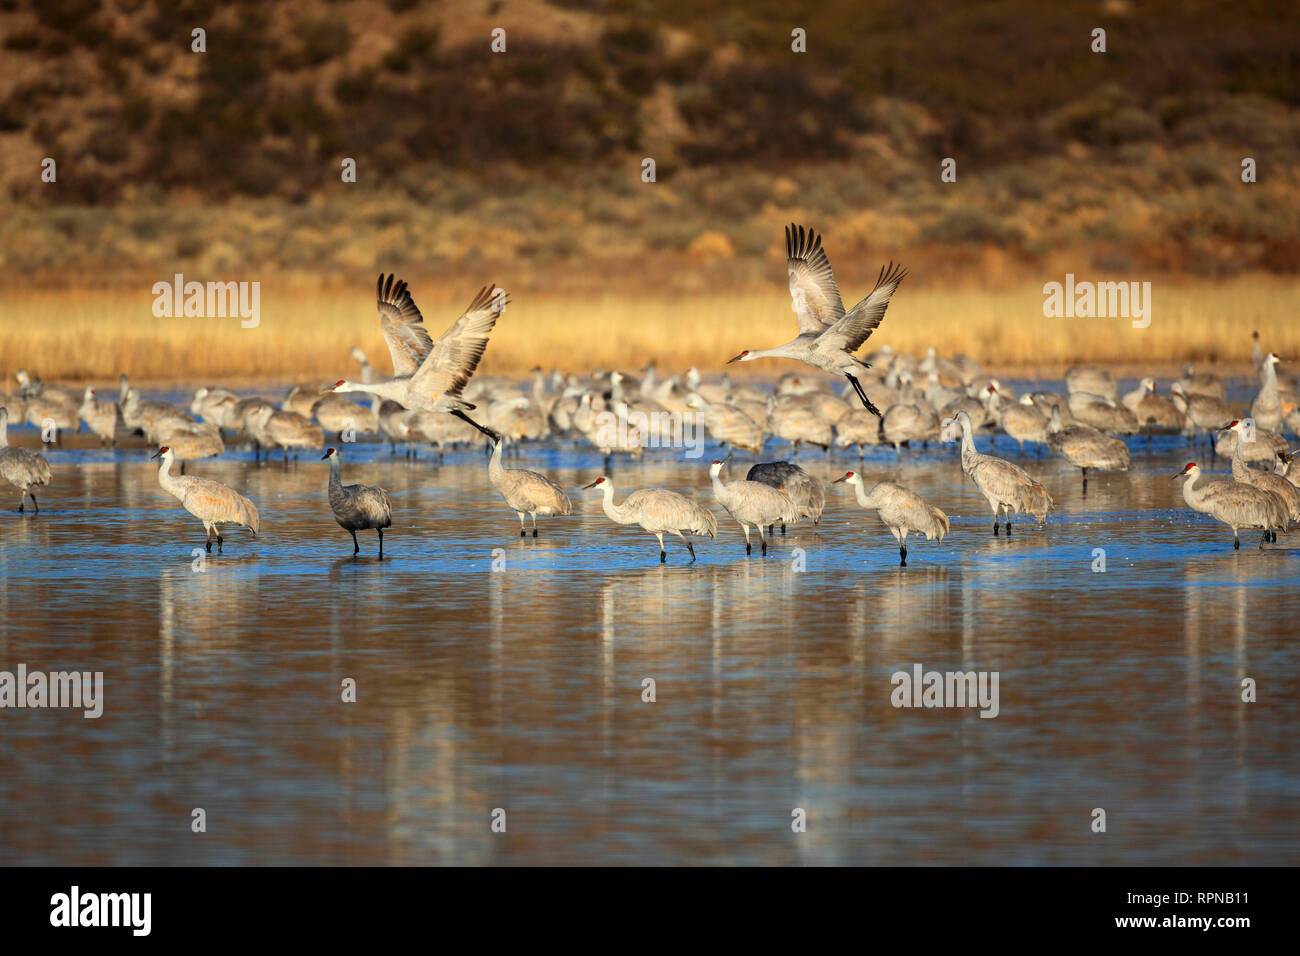 zoology / animals, birds (Aves), Sandhill Crane, slack canadensis, Sandhill crane, gauge standing in t, Additional-Rights-Clearance-Info-Not-Available - Stock Image